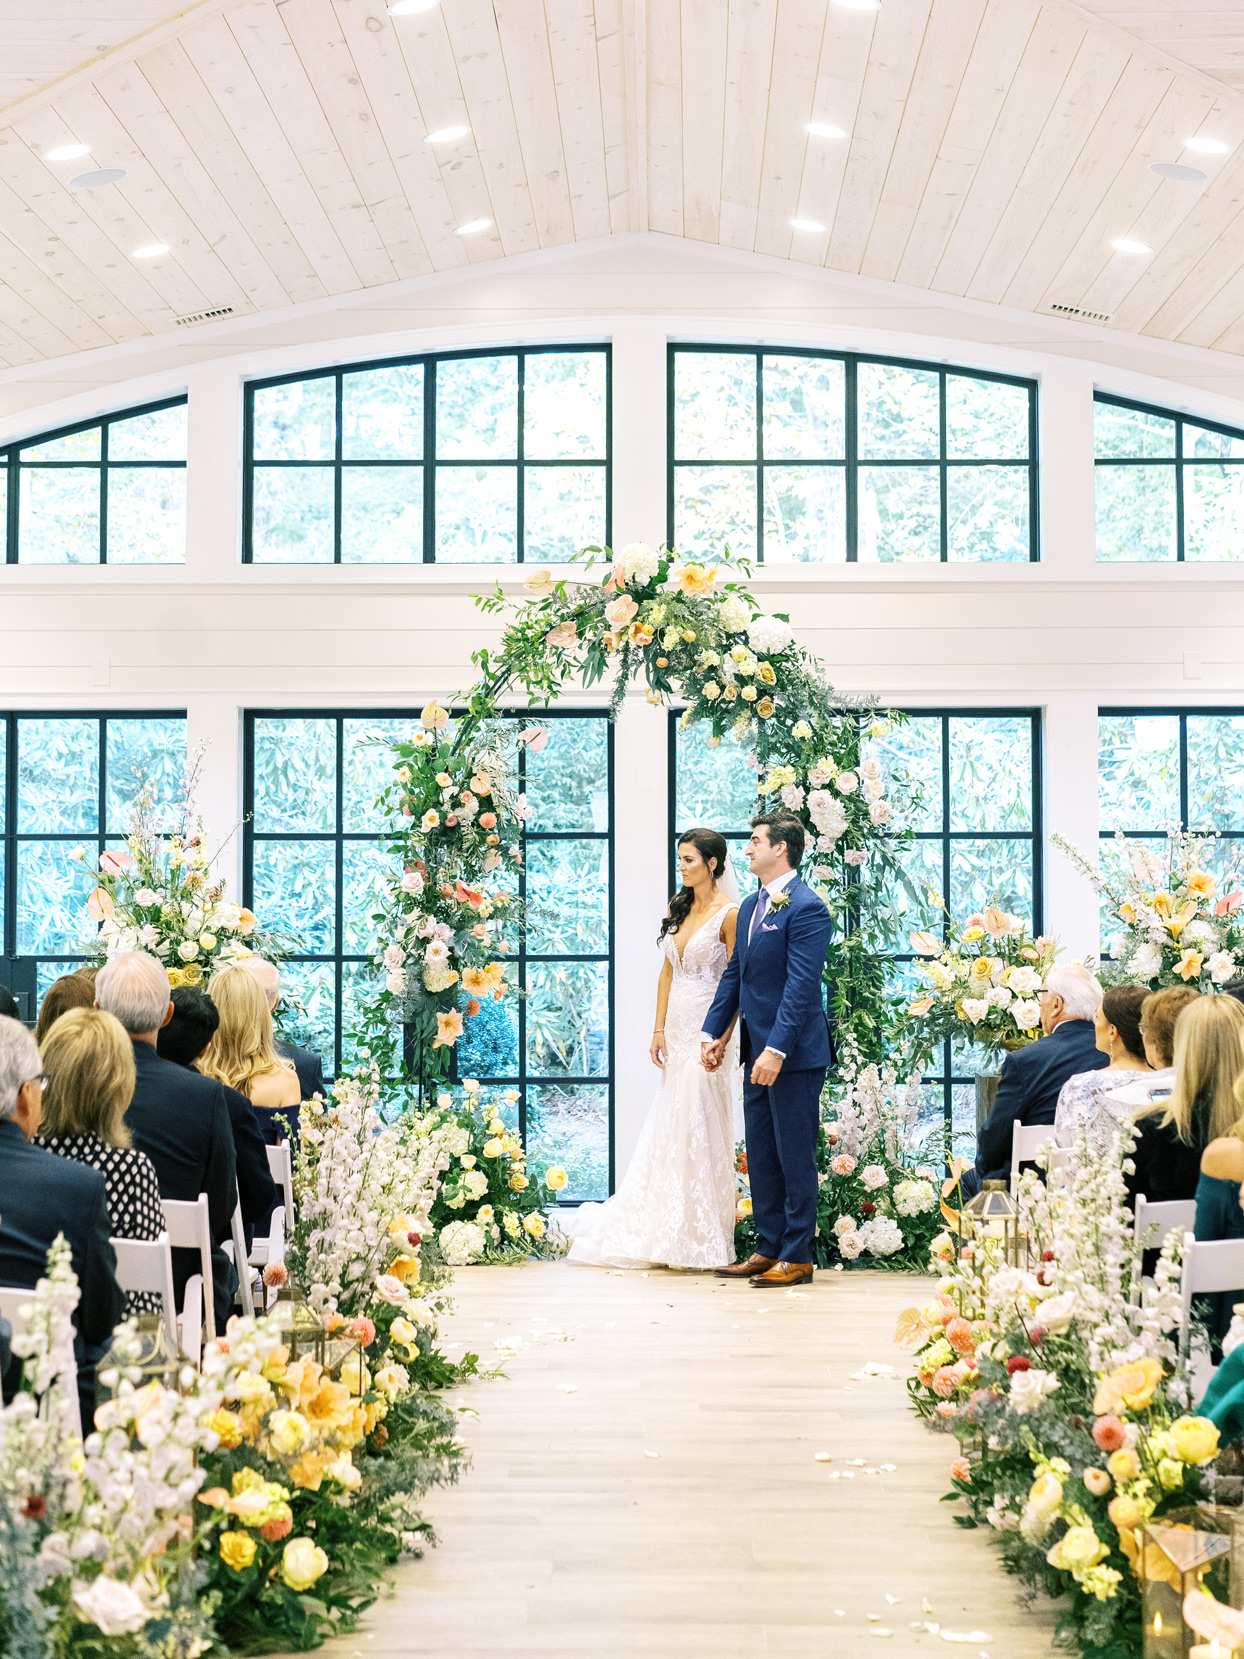 Bride and groom standing under floral arch during wedding ceremony